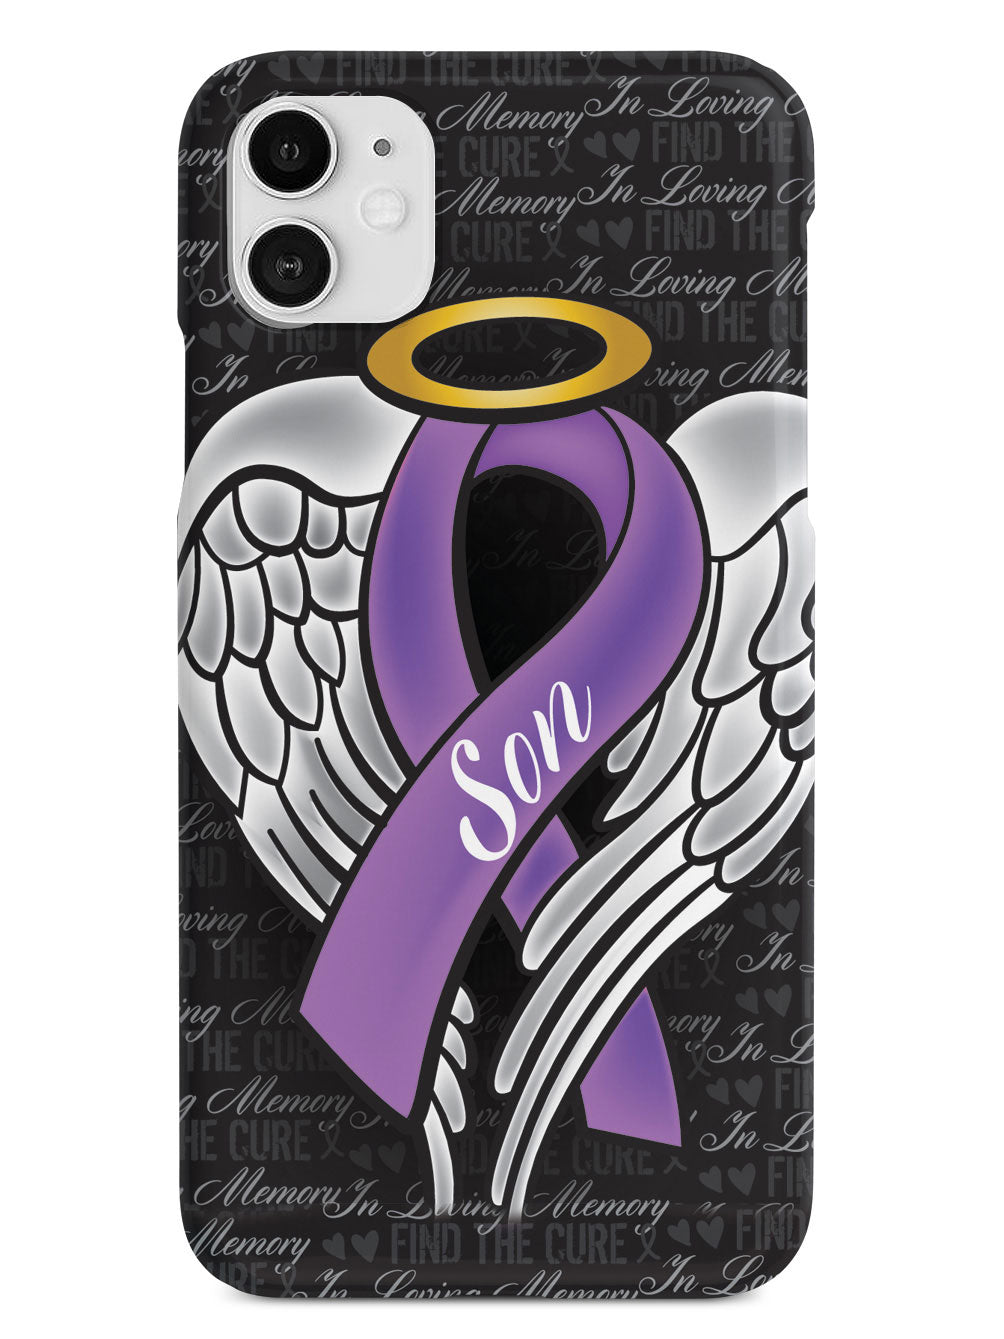 In Loving Memory of My Son - Purple Ribbon Case